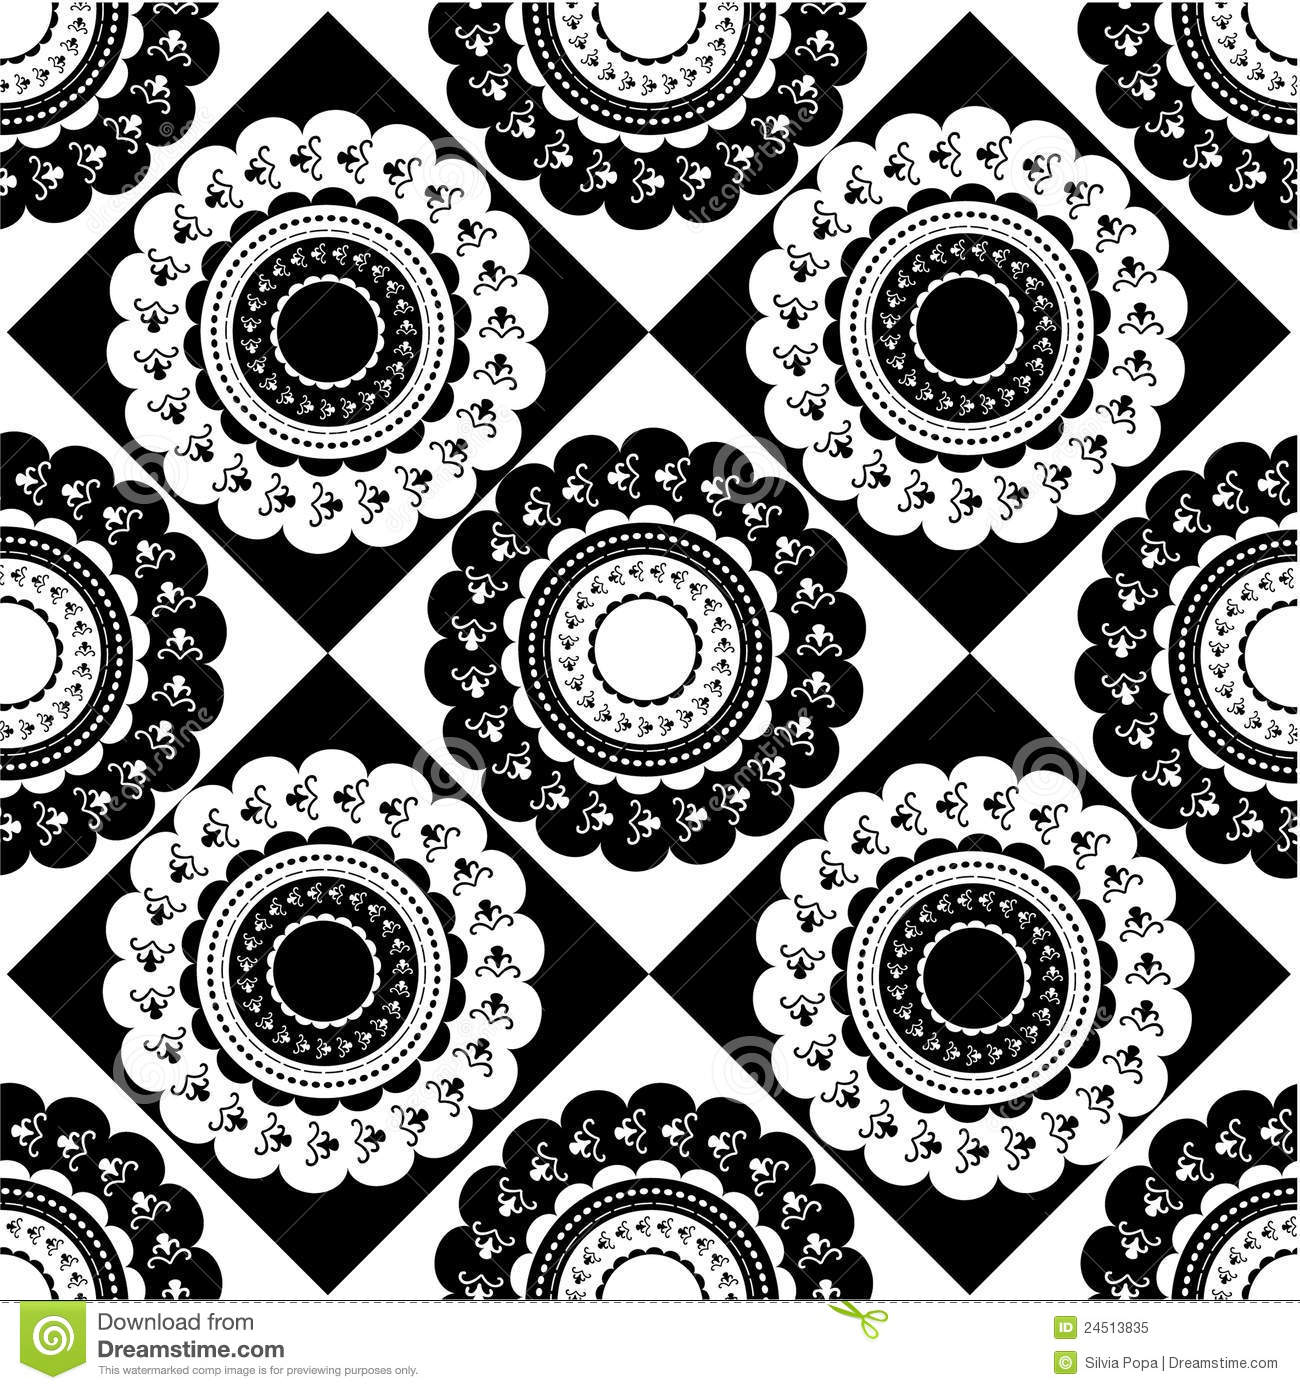 Black and white ornaments - Pattern Of Round Black And White Ornaments Royalty Free Stock Photo